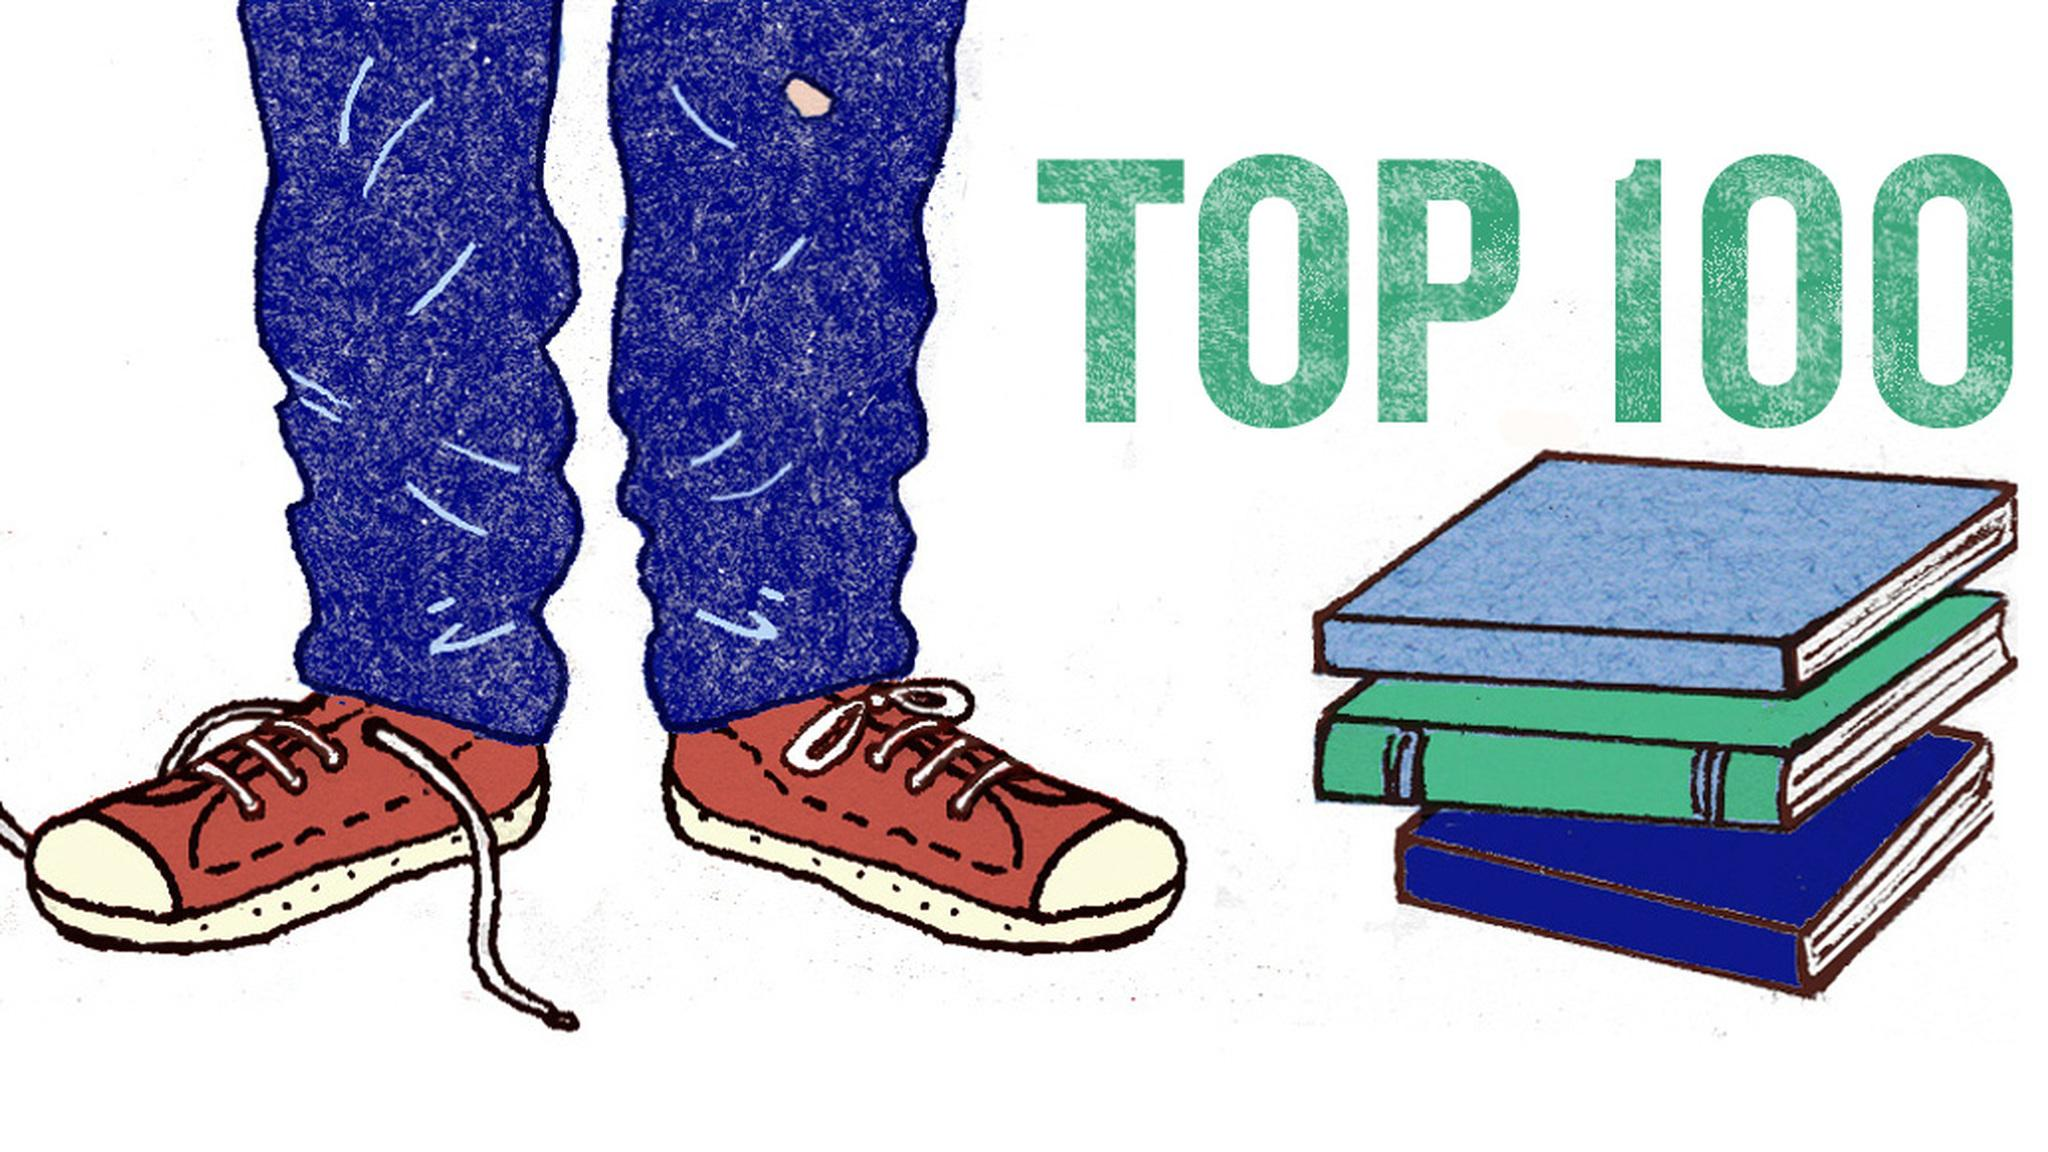 What are some good publishers for teens?